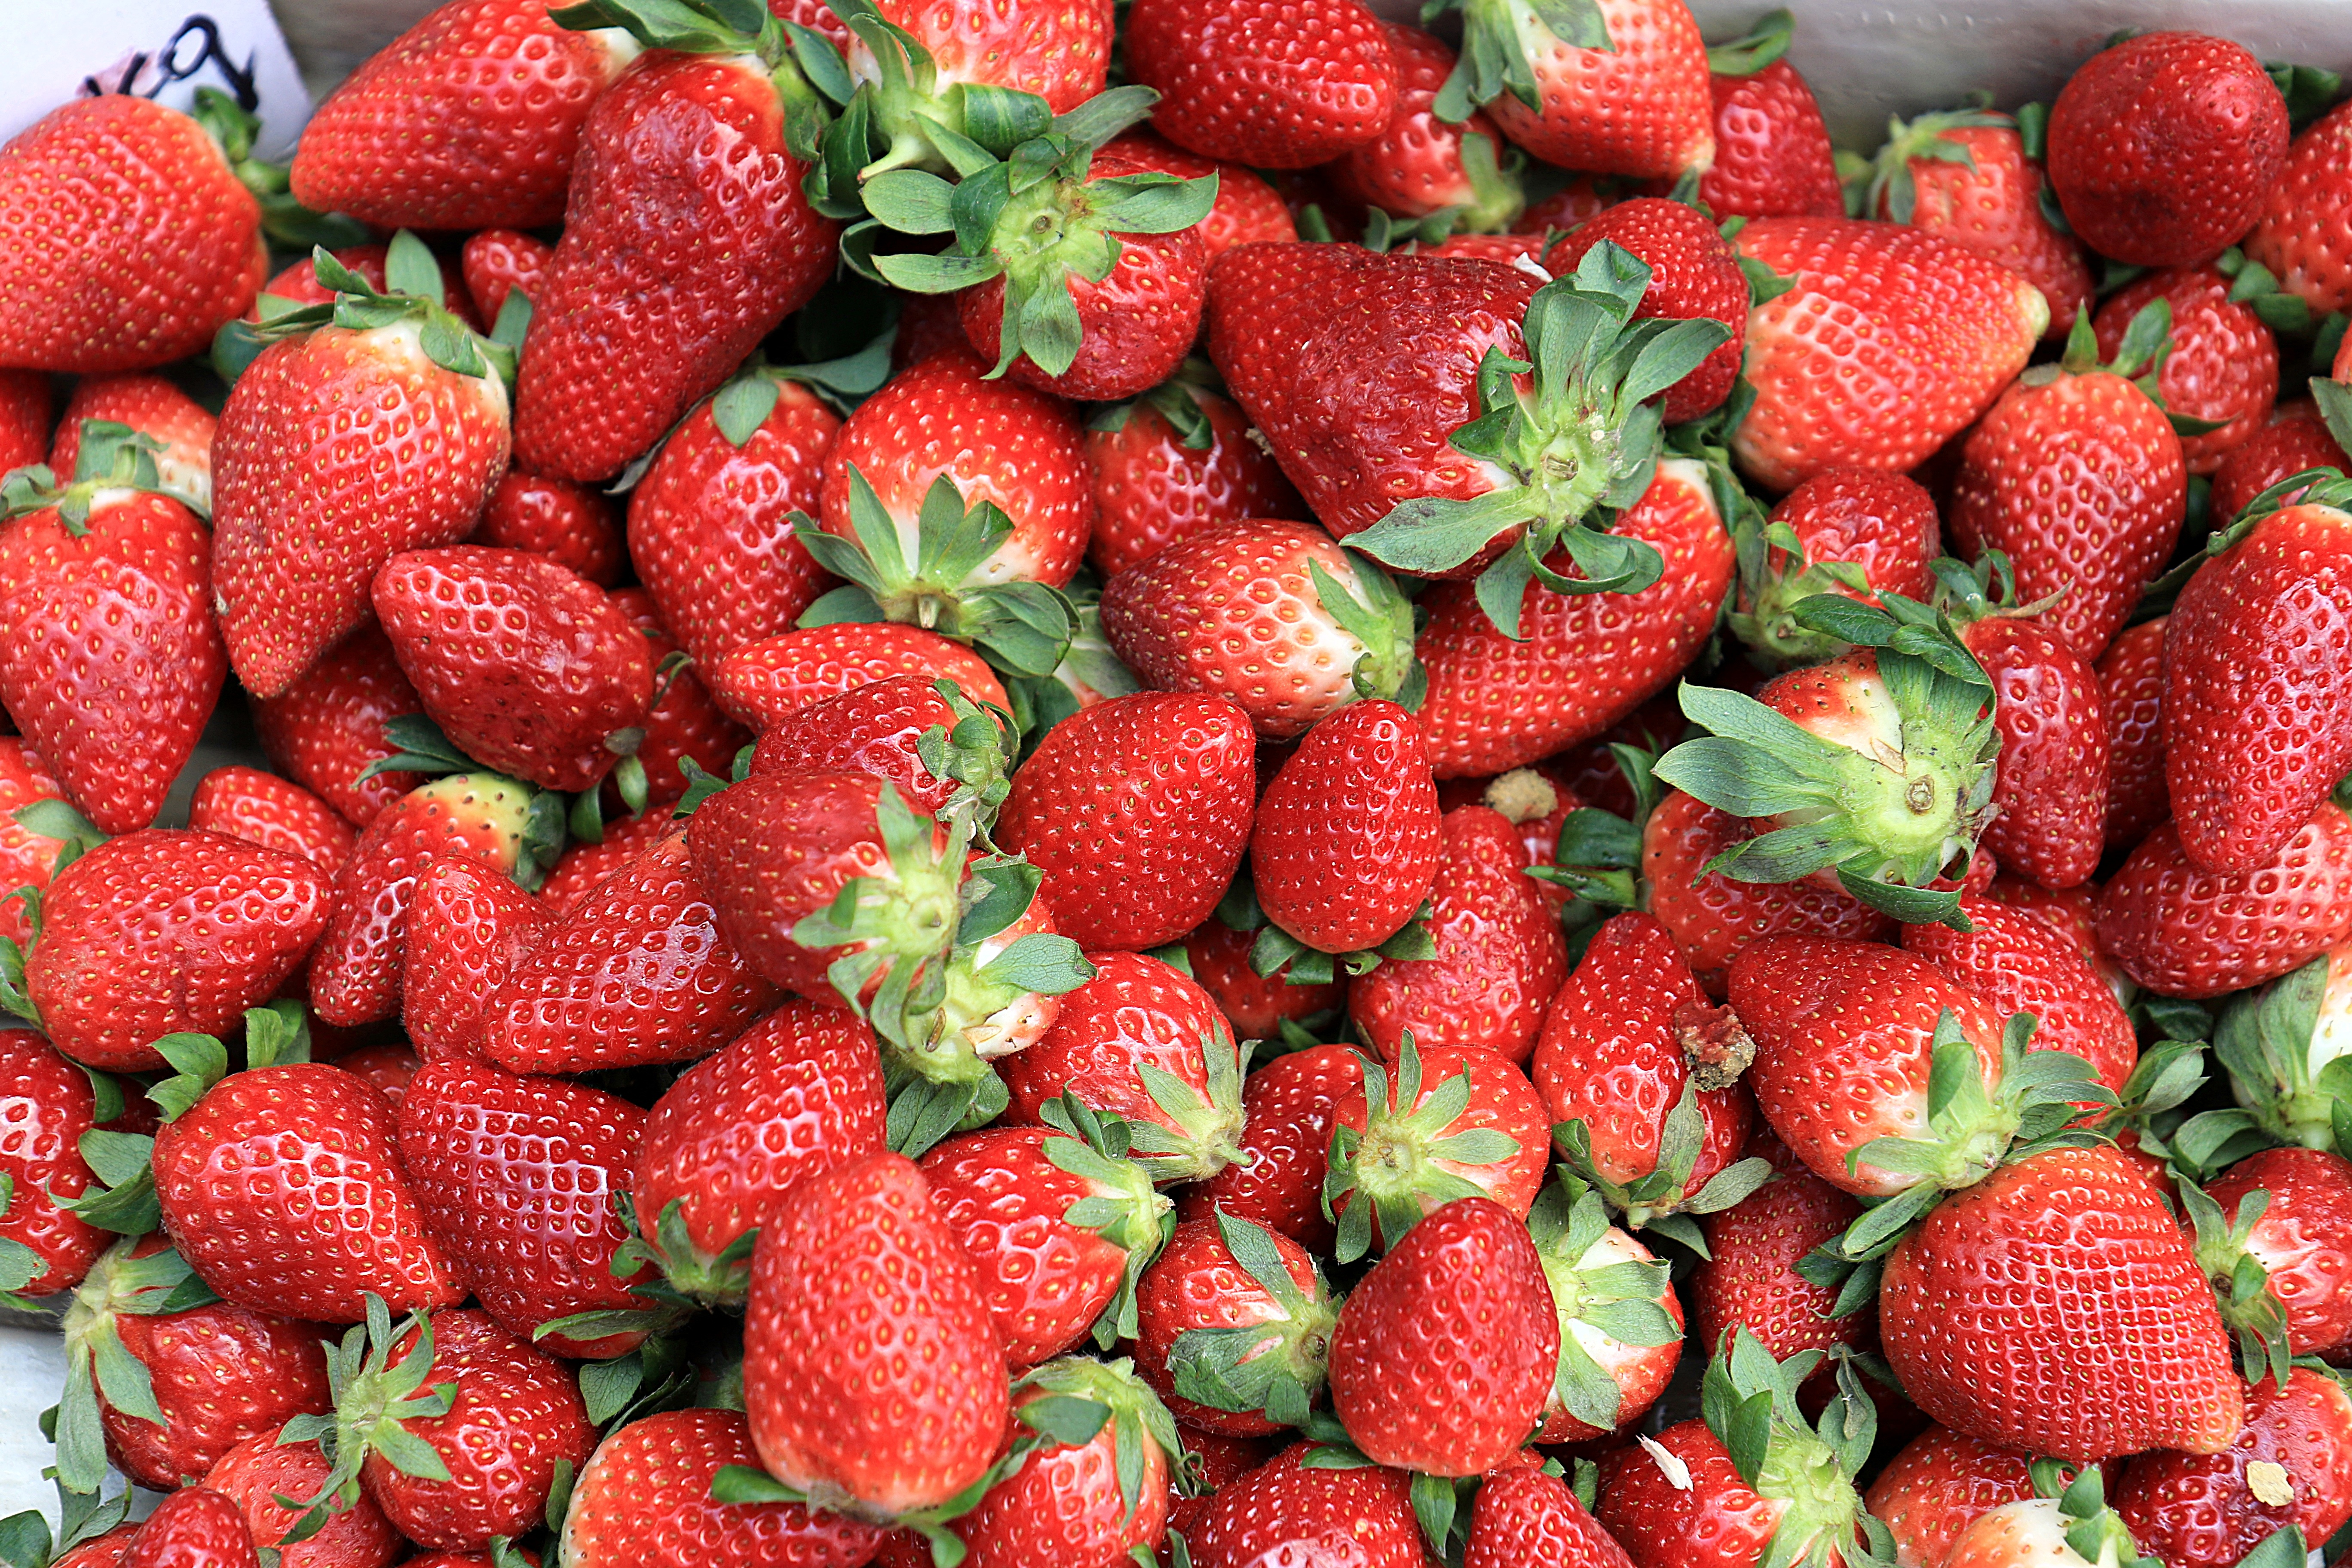 76140 download wallpaper Food, Strawberry, Berries, Ripe screensavers and pictures for free